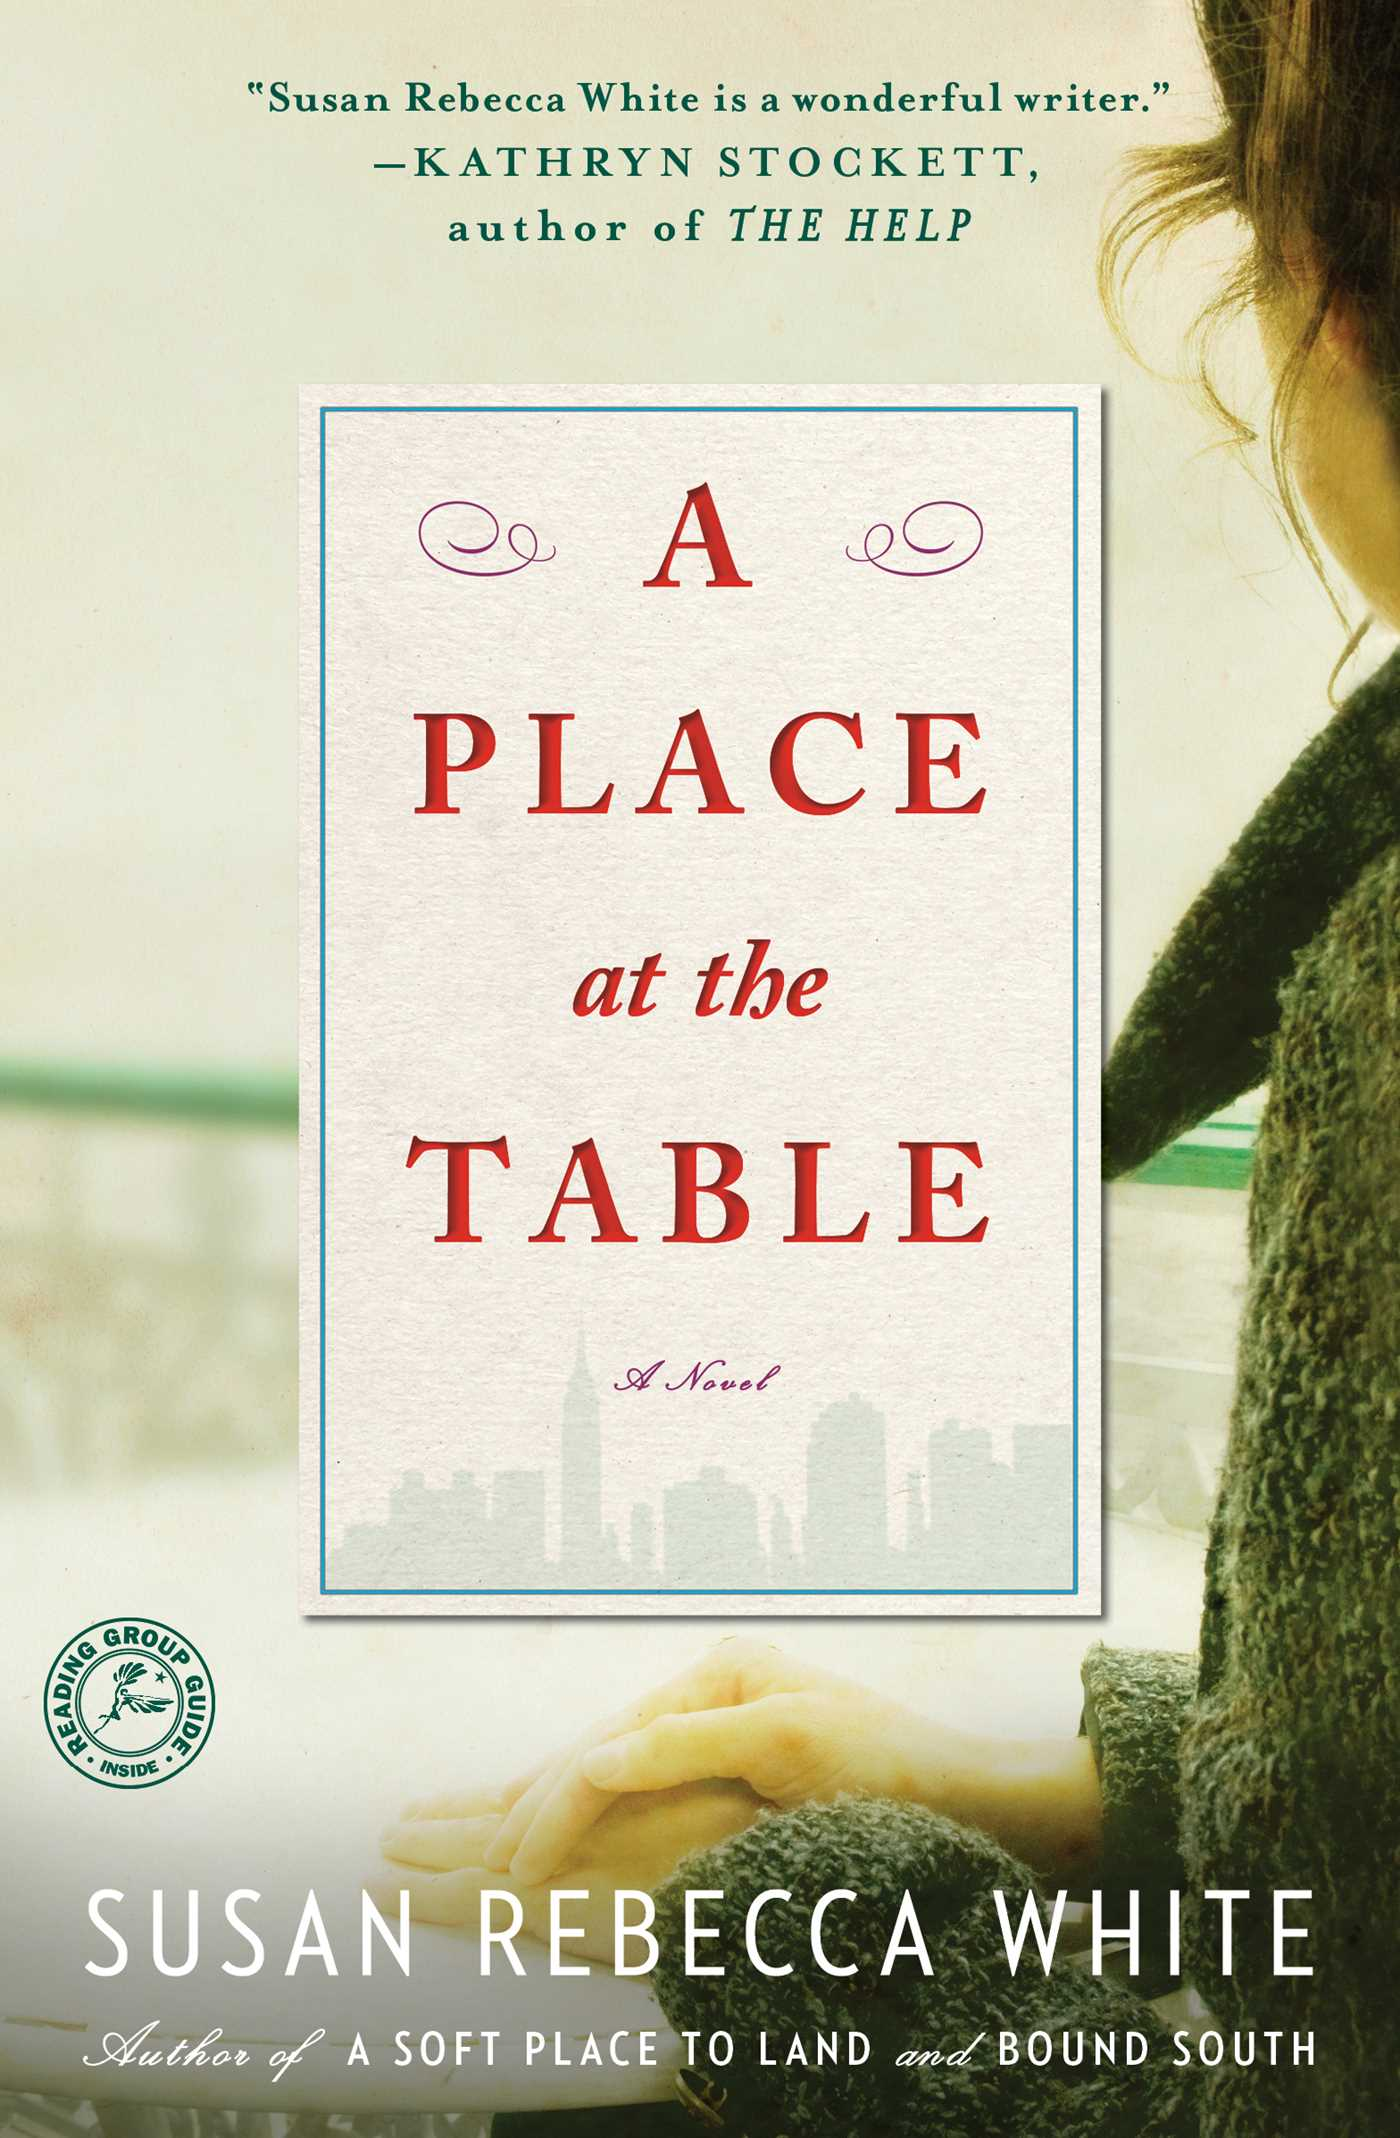 A-place-at-the-table-9781451608946_hr